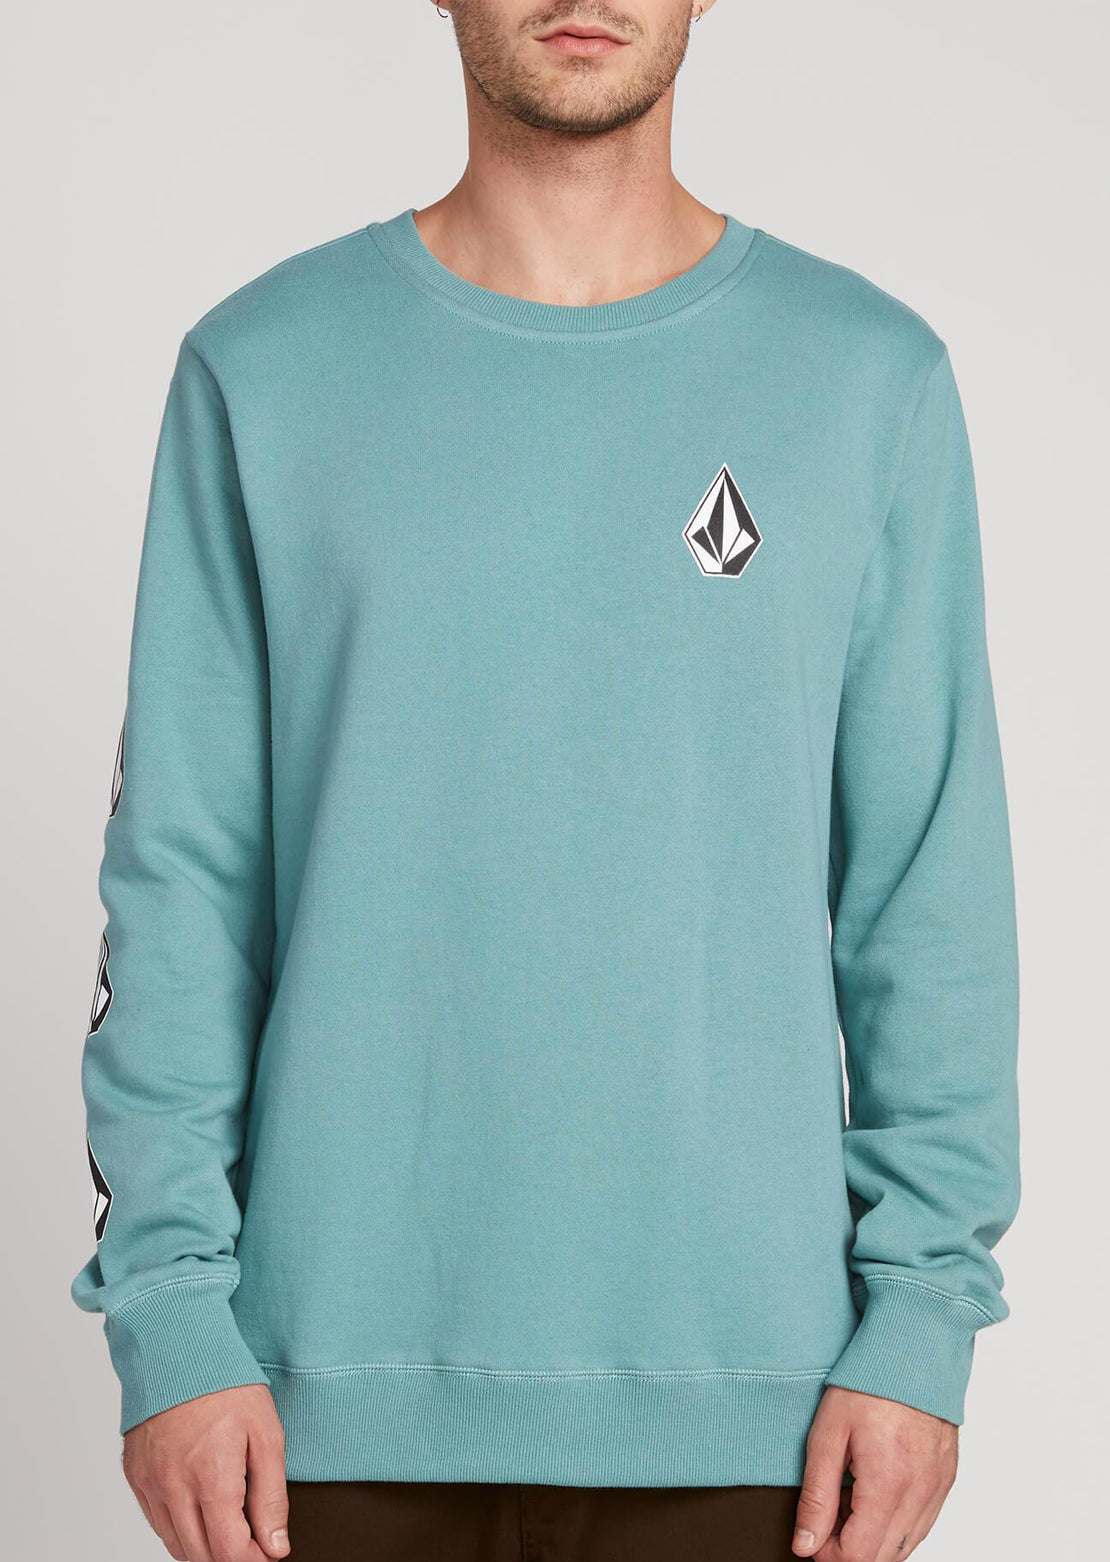 Volcom Men's Deadly Stone Crewneck Sweater Agave